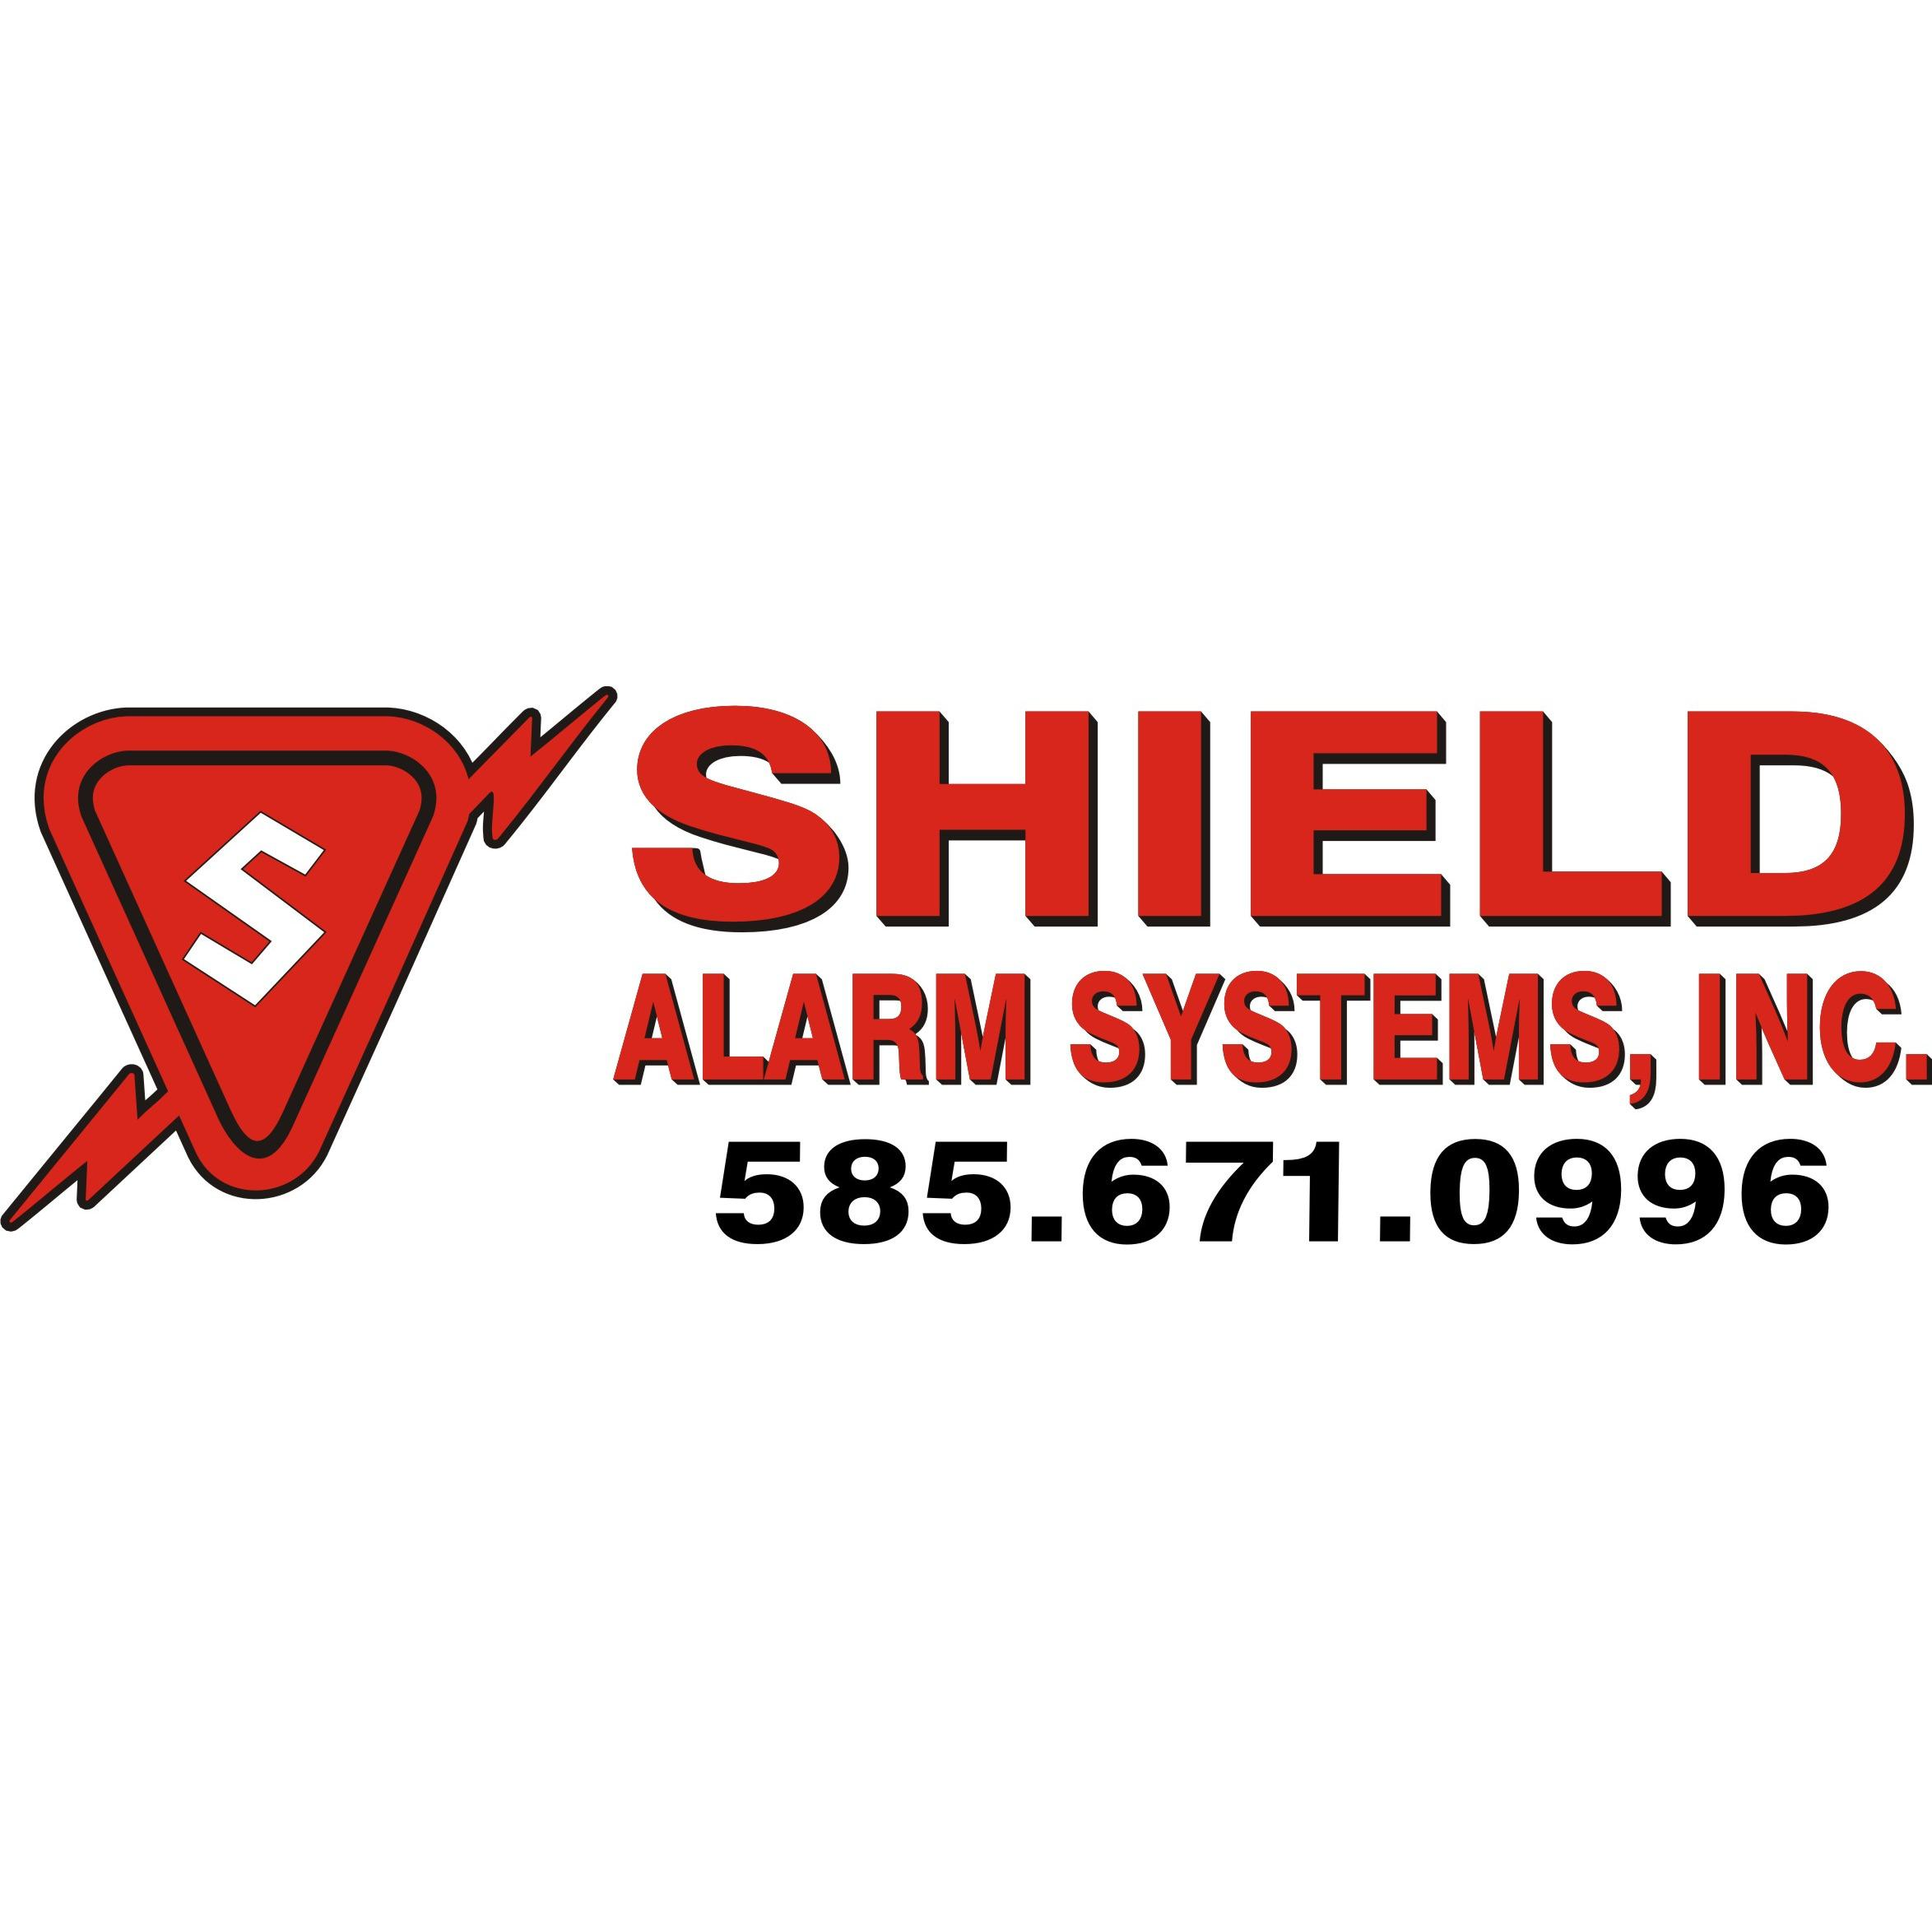 Shield Alarm Systems, Inc.